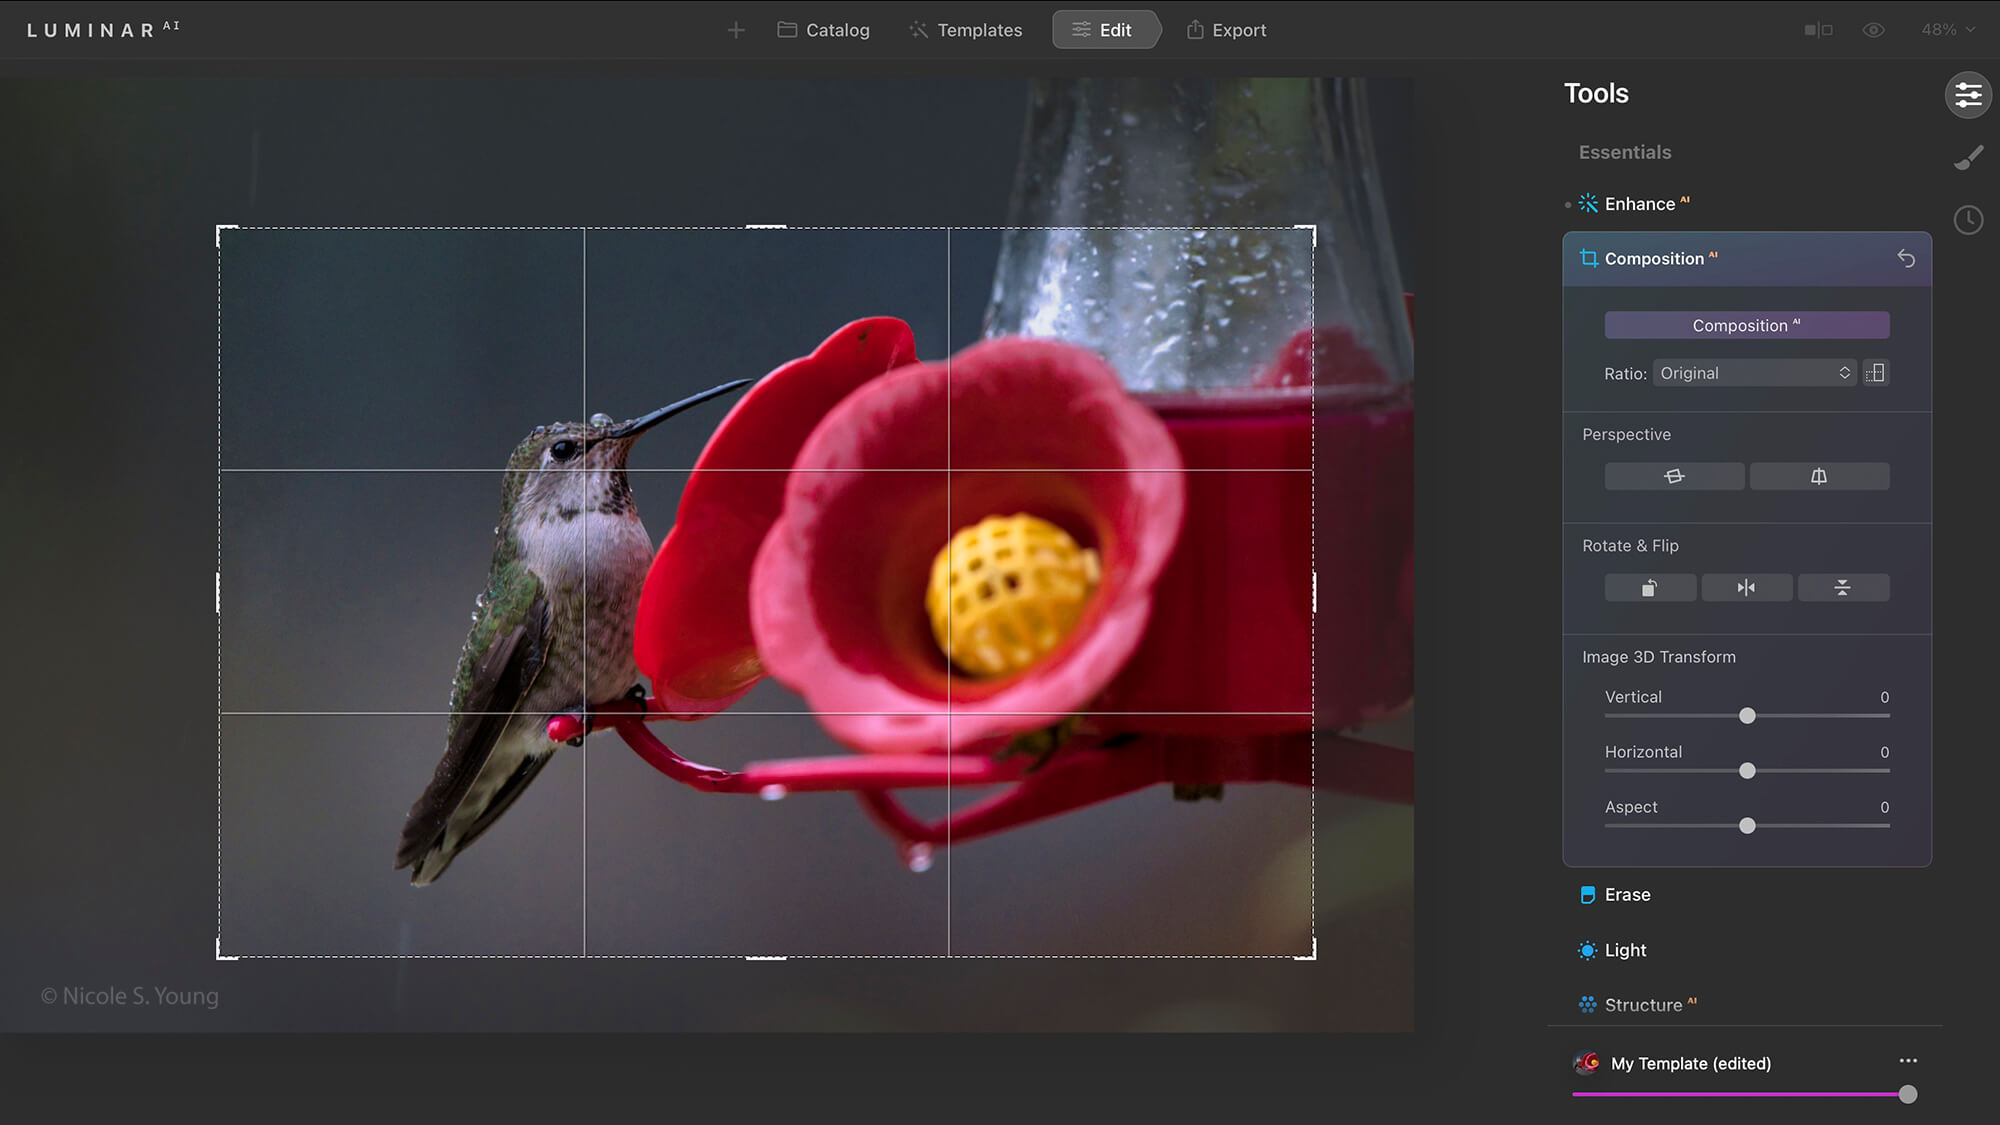 Editing software opened for cropping